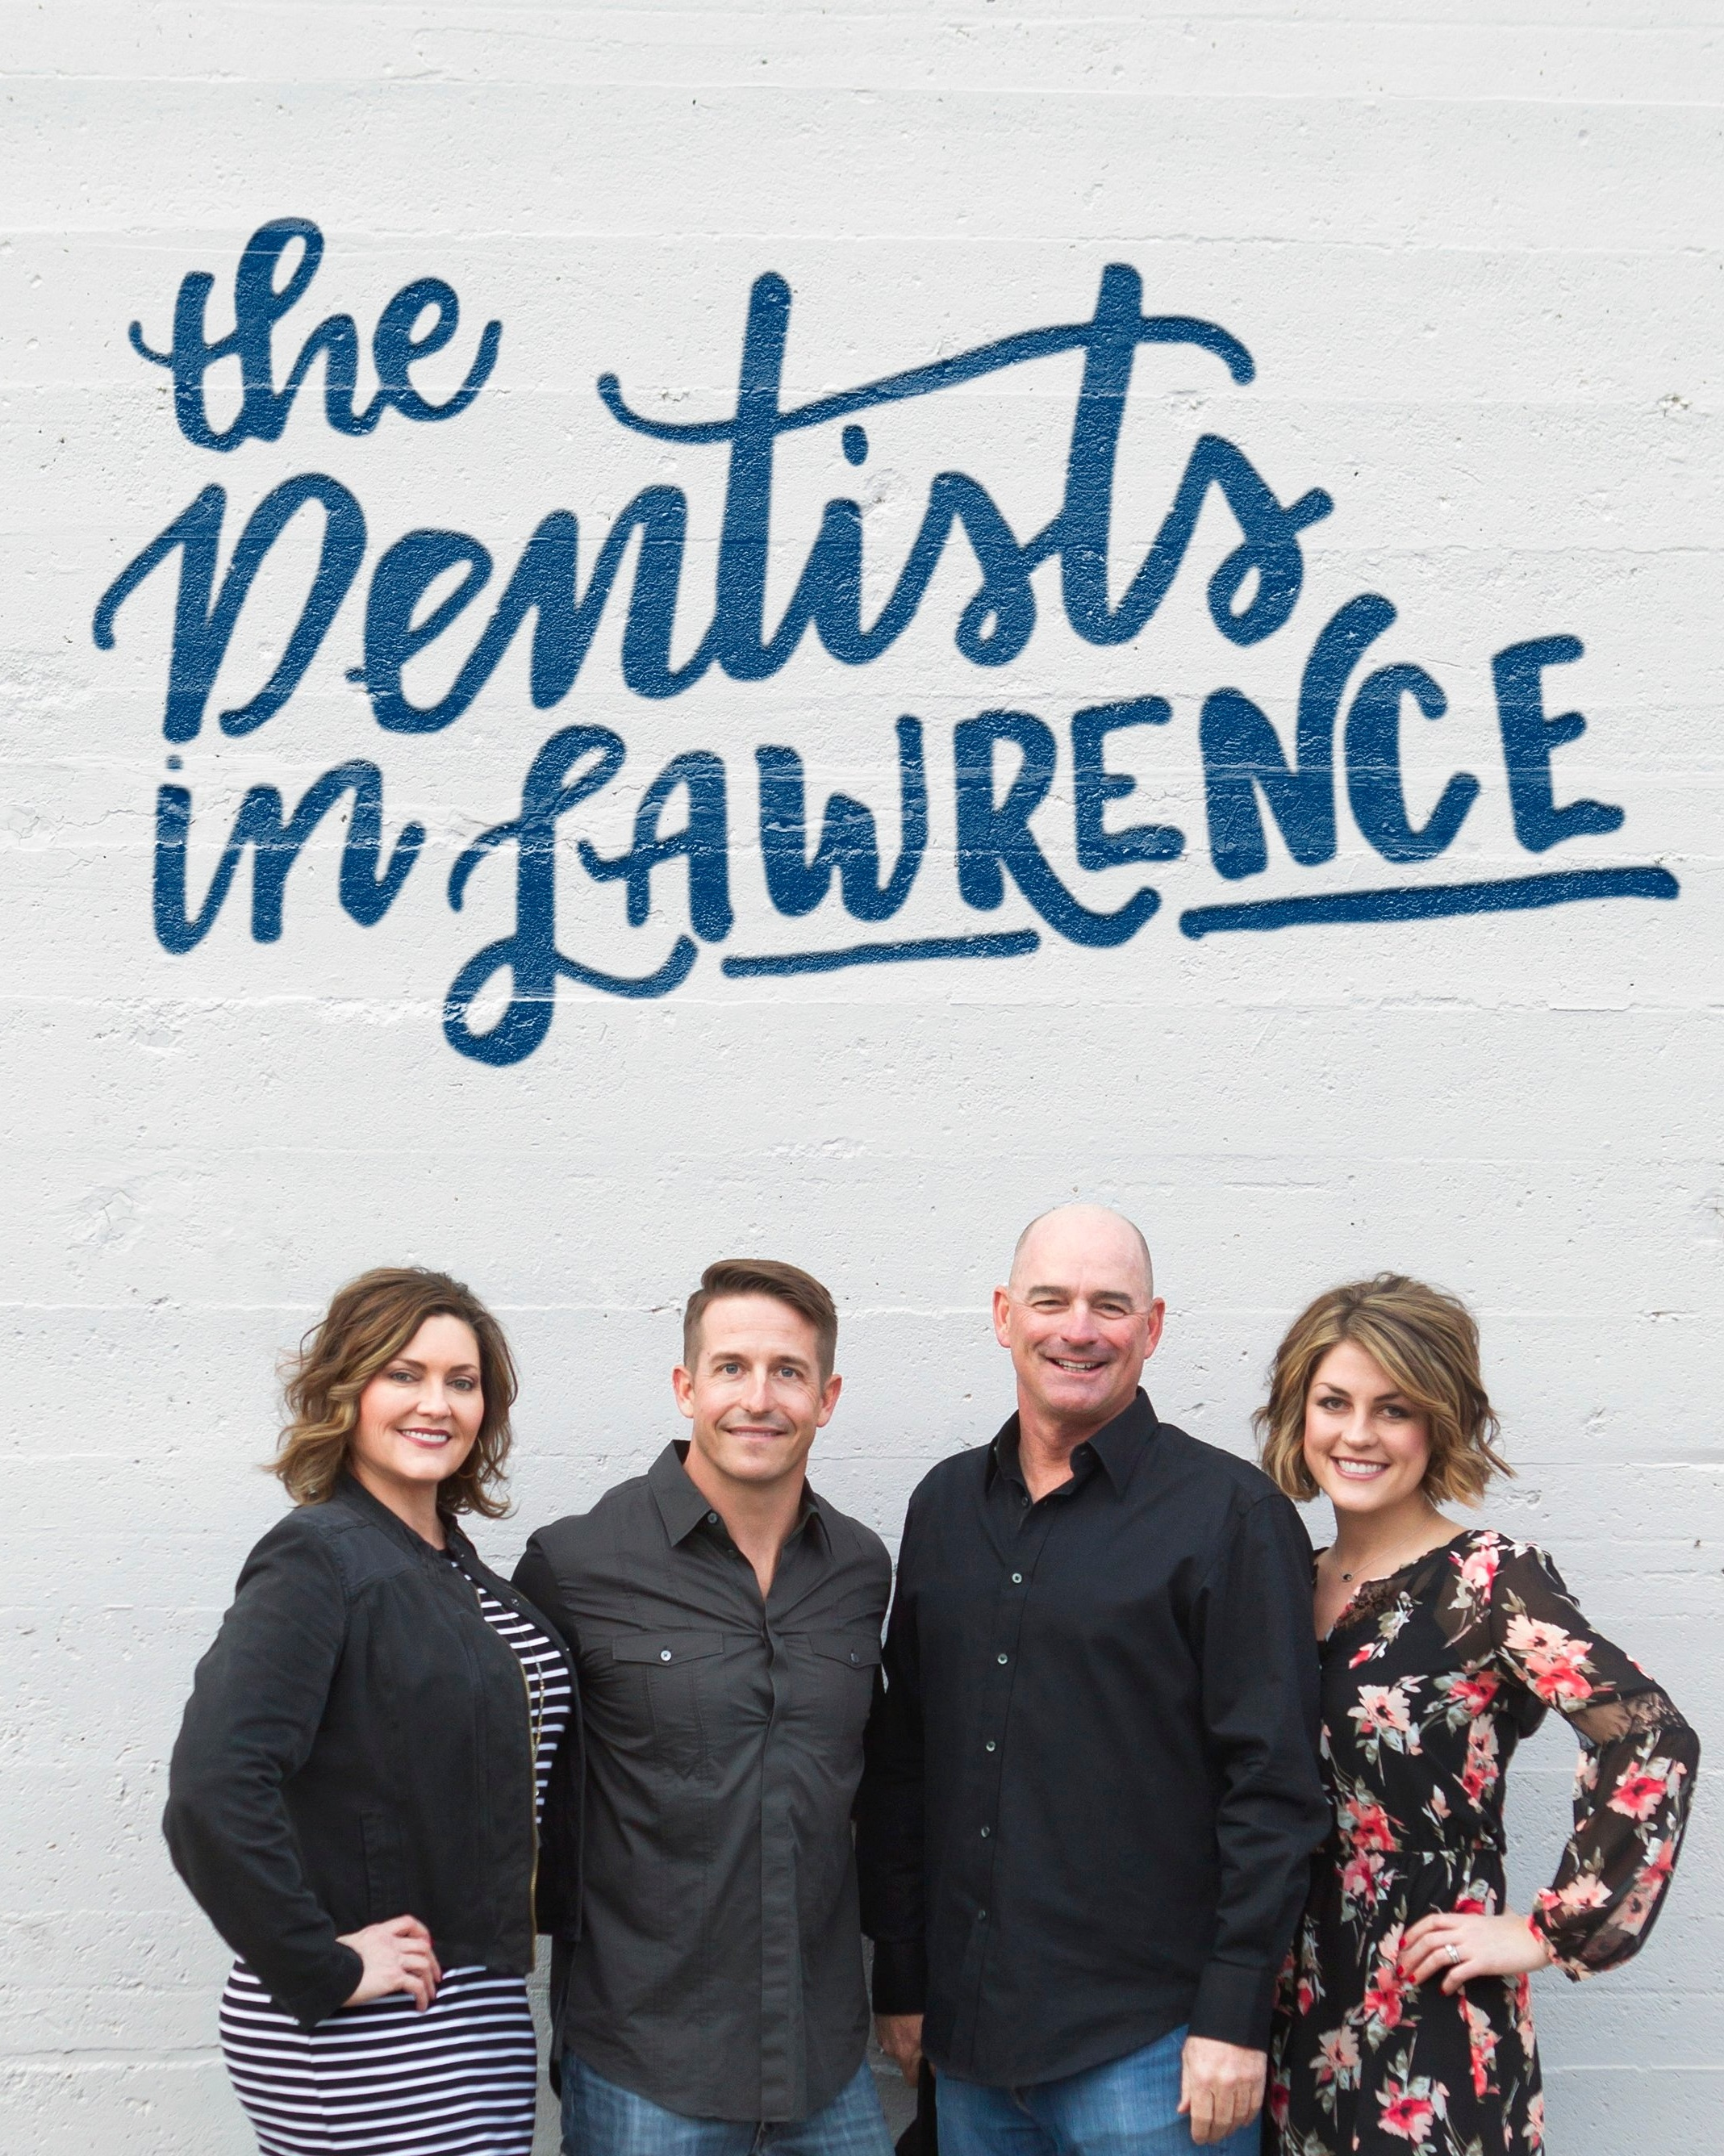 The Dentists in Lawrence Team